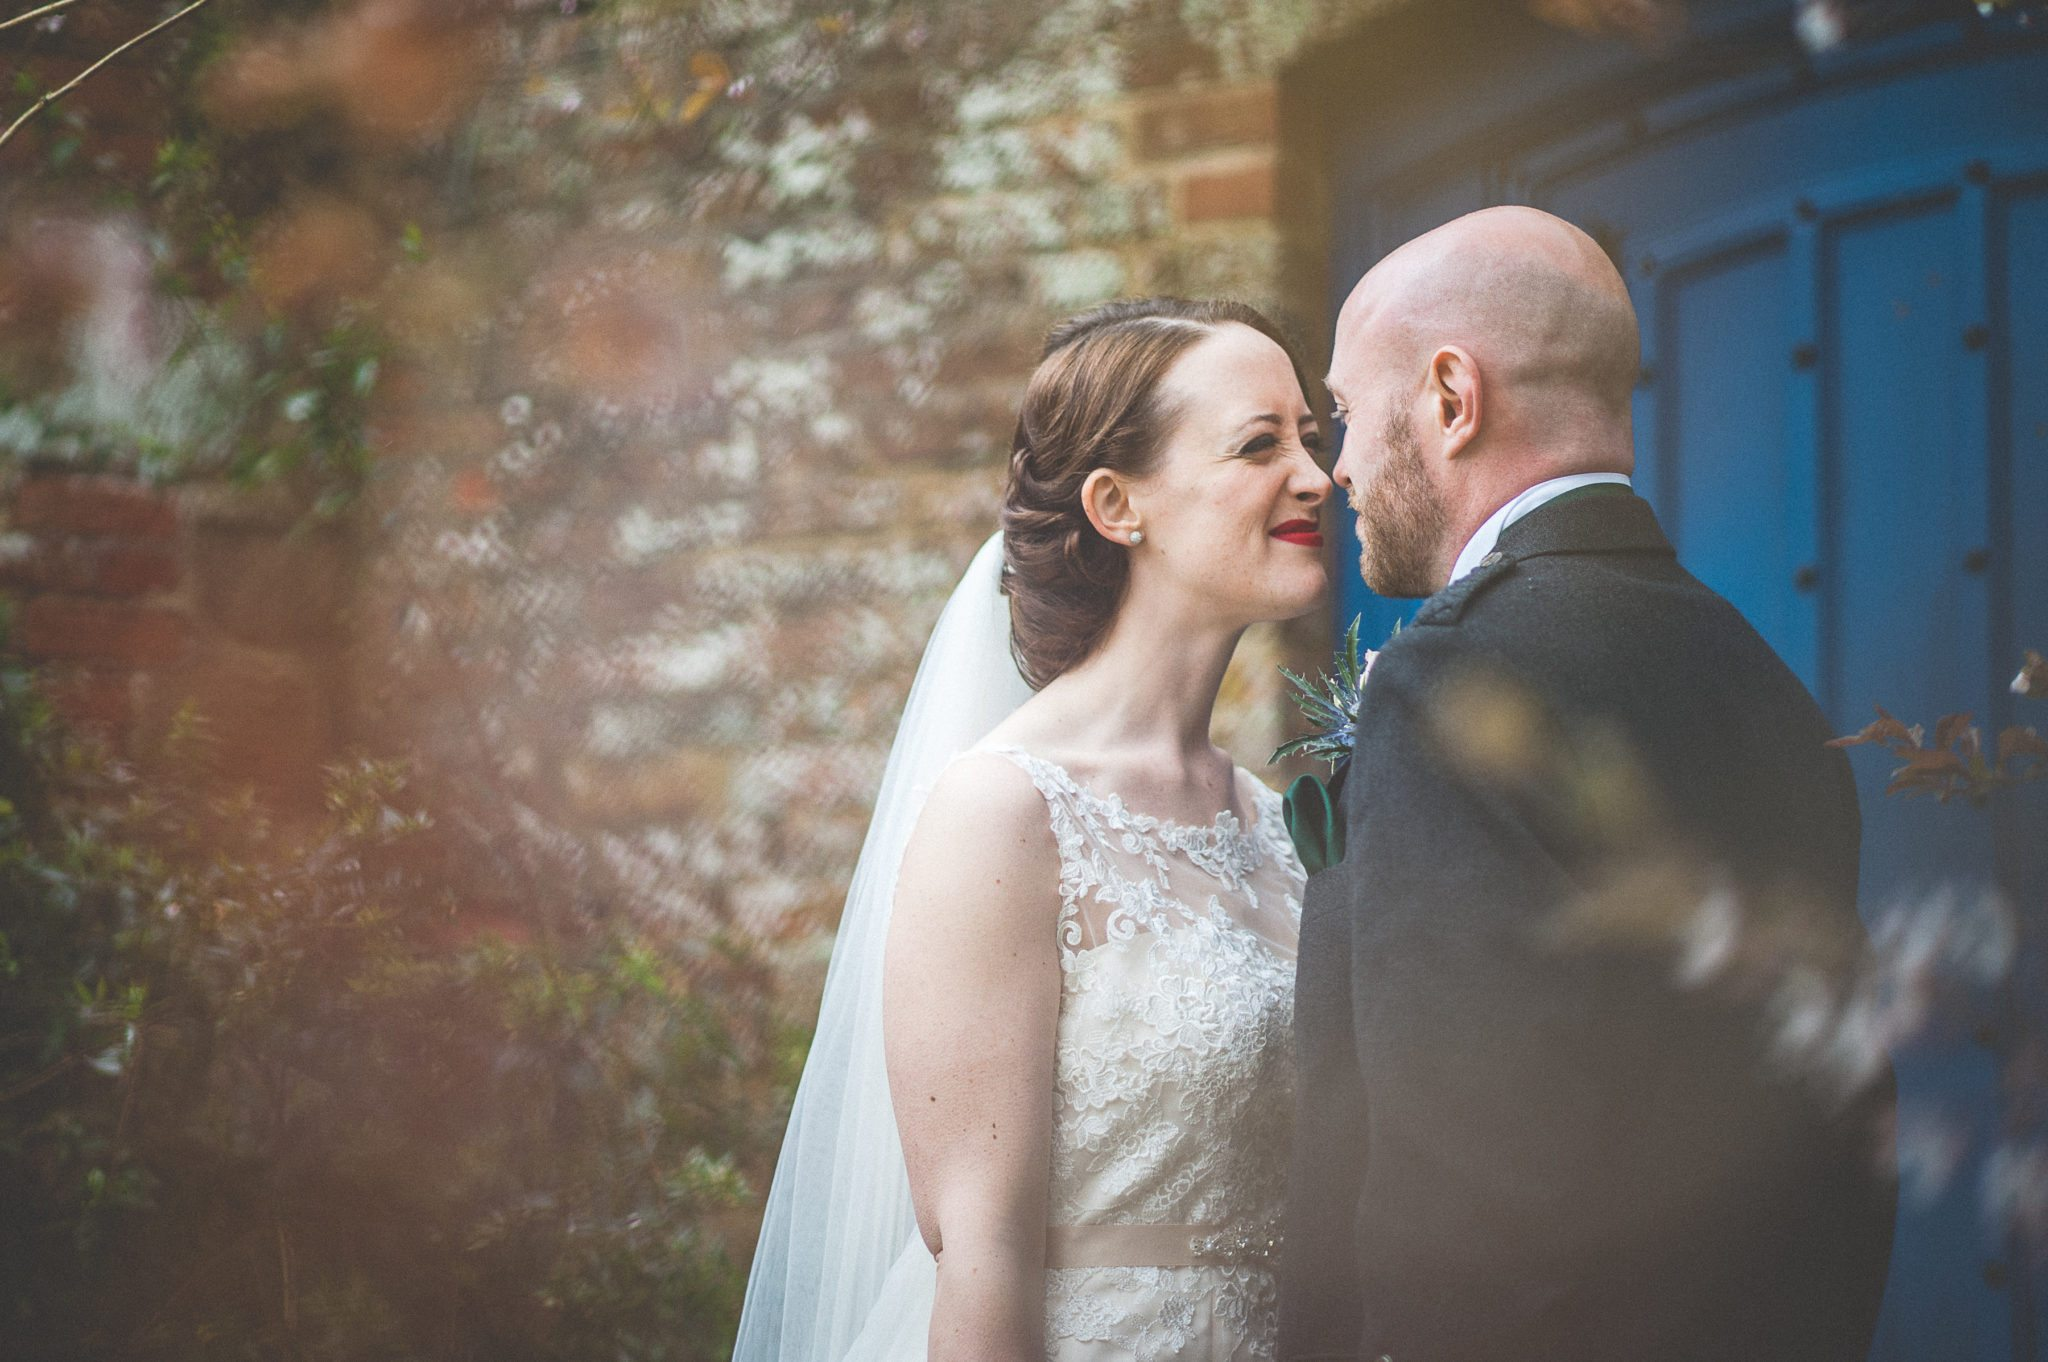 Jen and Andy gaze lovingly at each other while standing in front of a blue door in the castle grounds